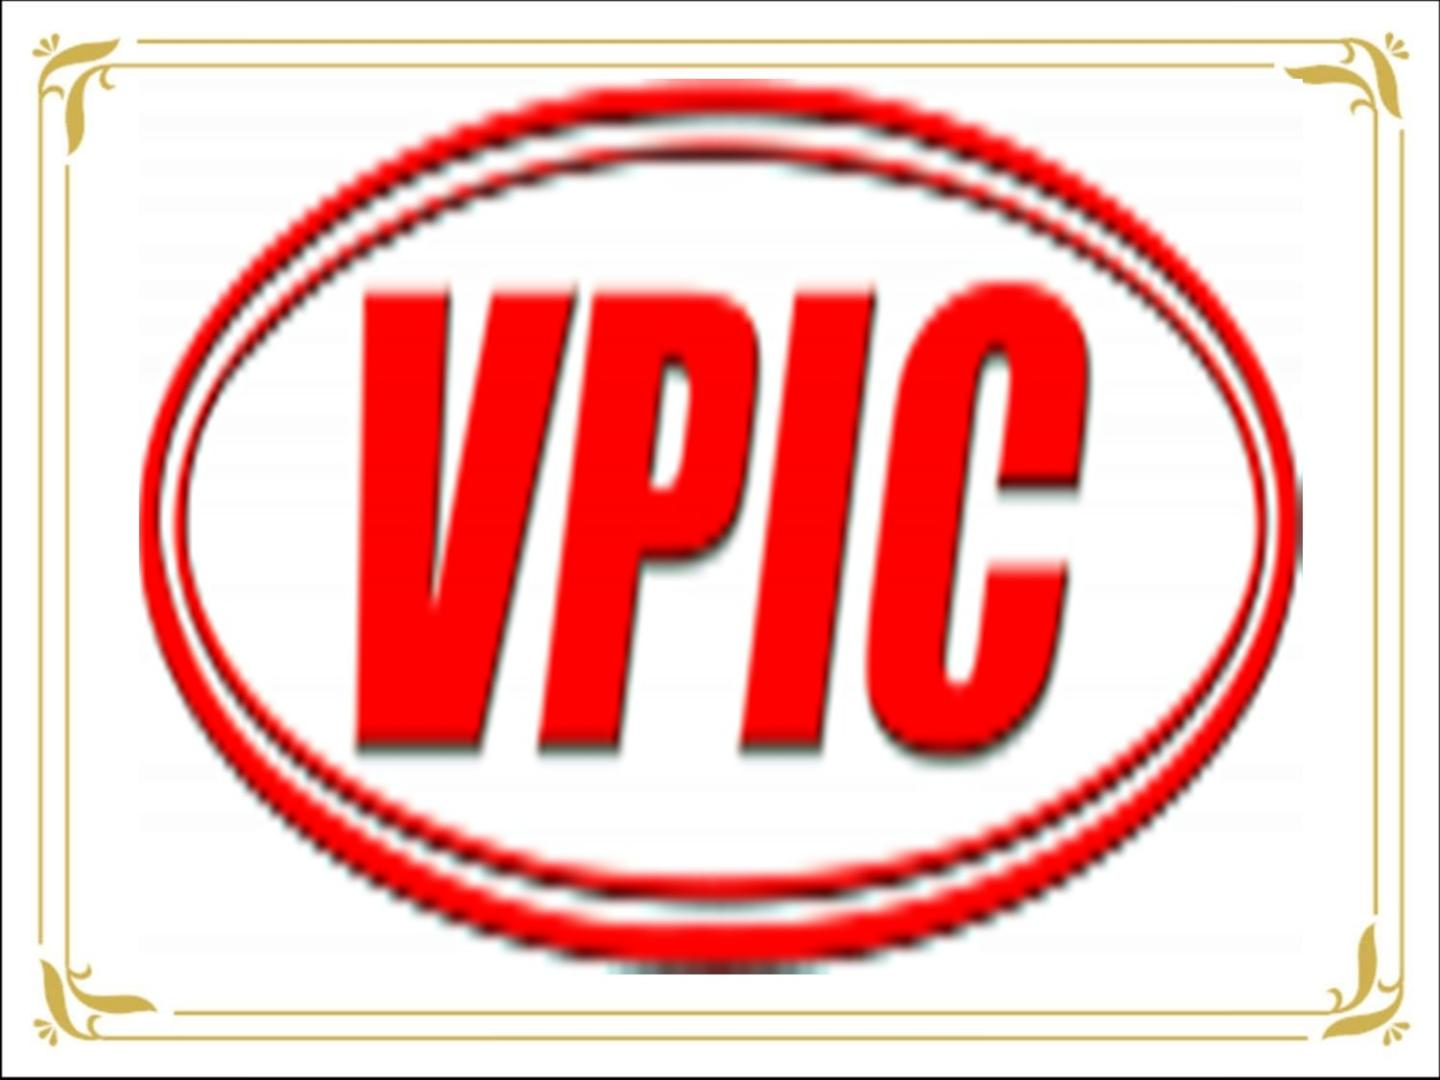 VPIC